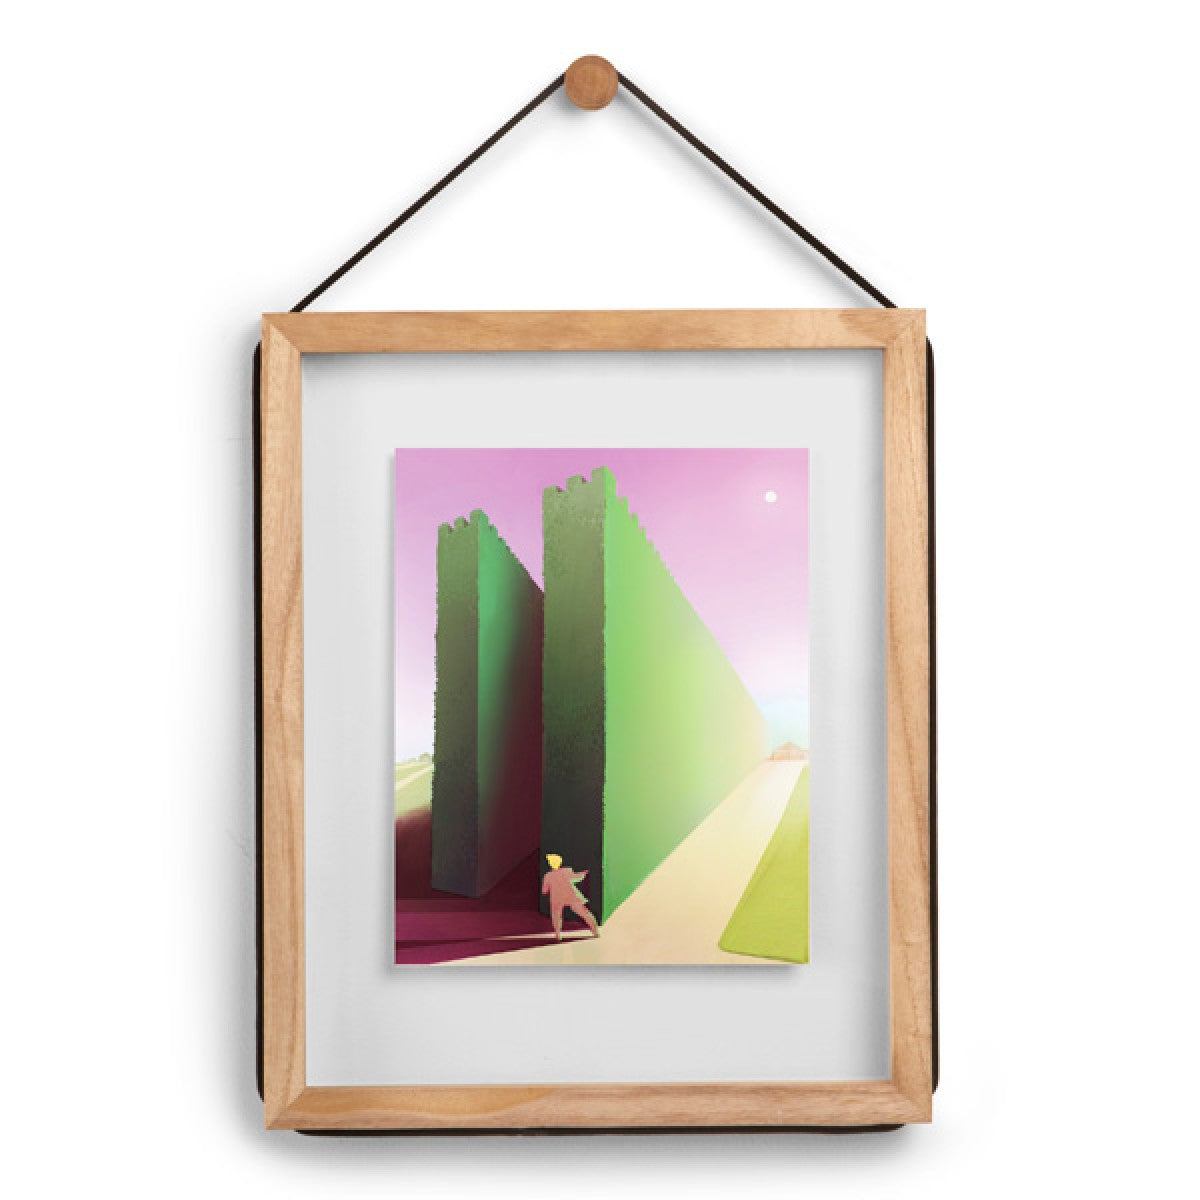 Umbra Corda Photo Frame